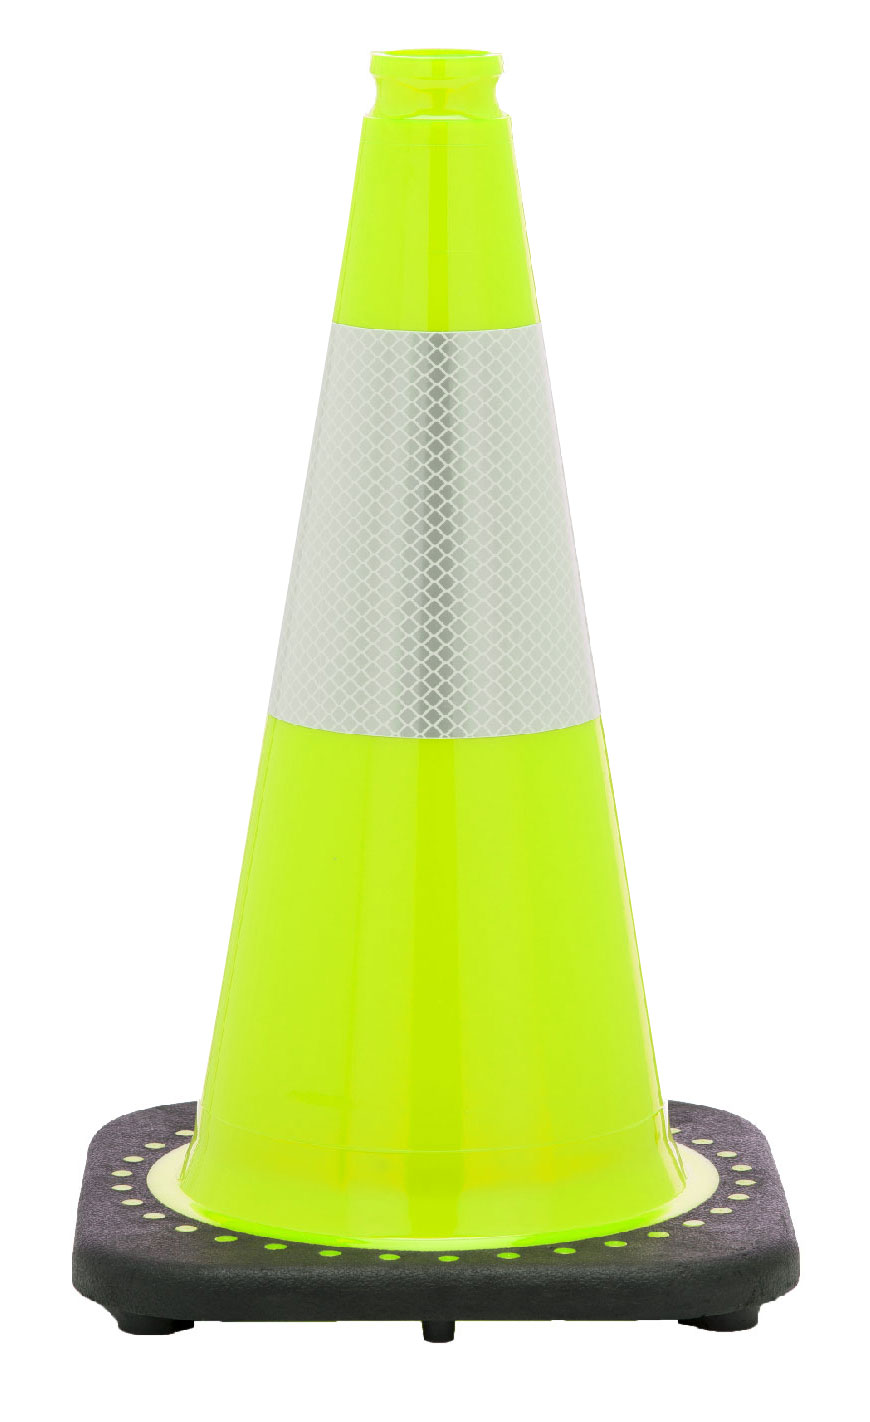 "Stanchions For Sale >> 18"" Lime Green Cone w/Black Base w/Reflective Collar 6"" - Traffic Cones For Less"